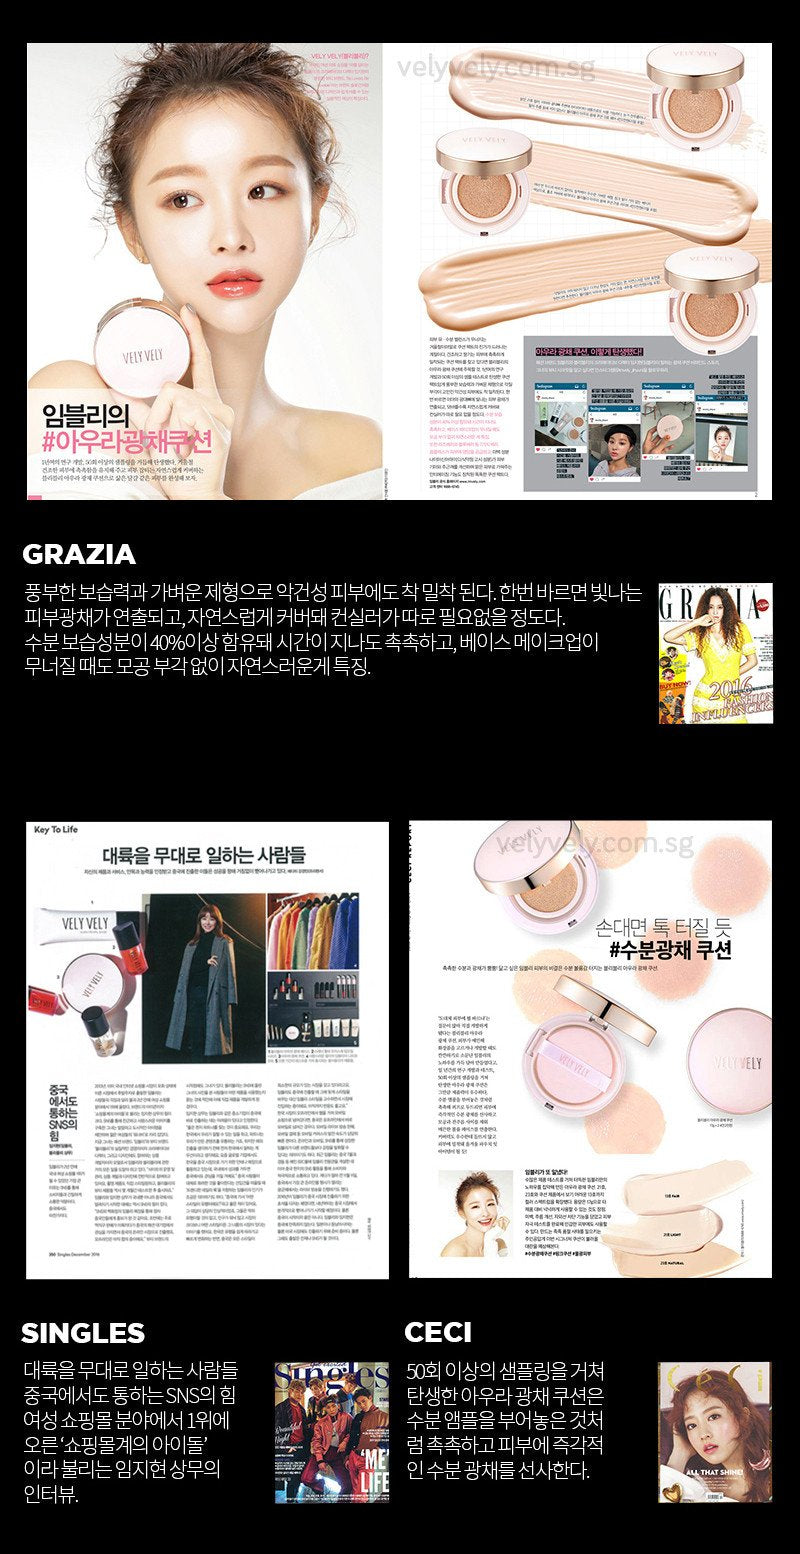 Vely Vely Aura Glow Cushion is featured is the magazines!